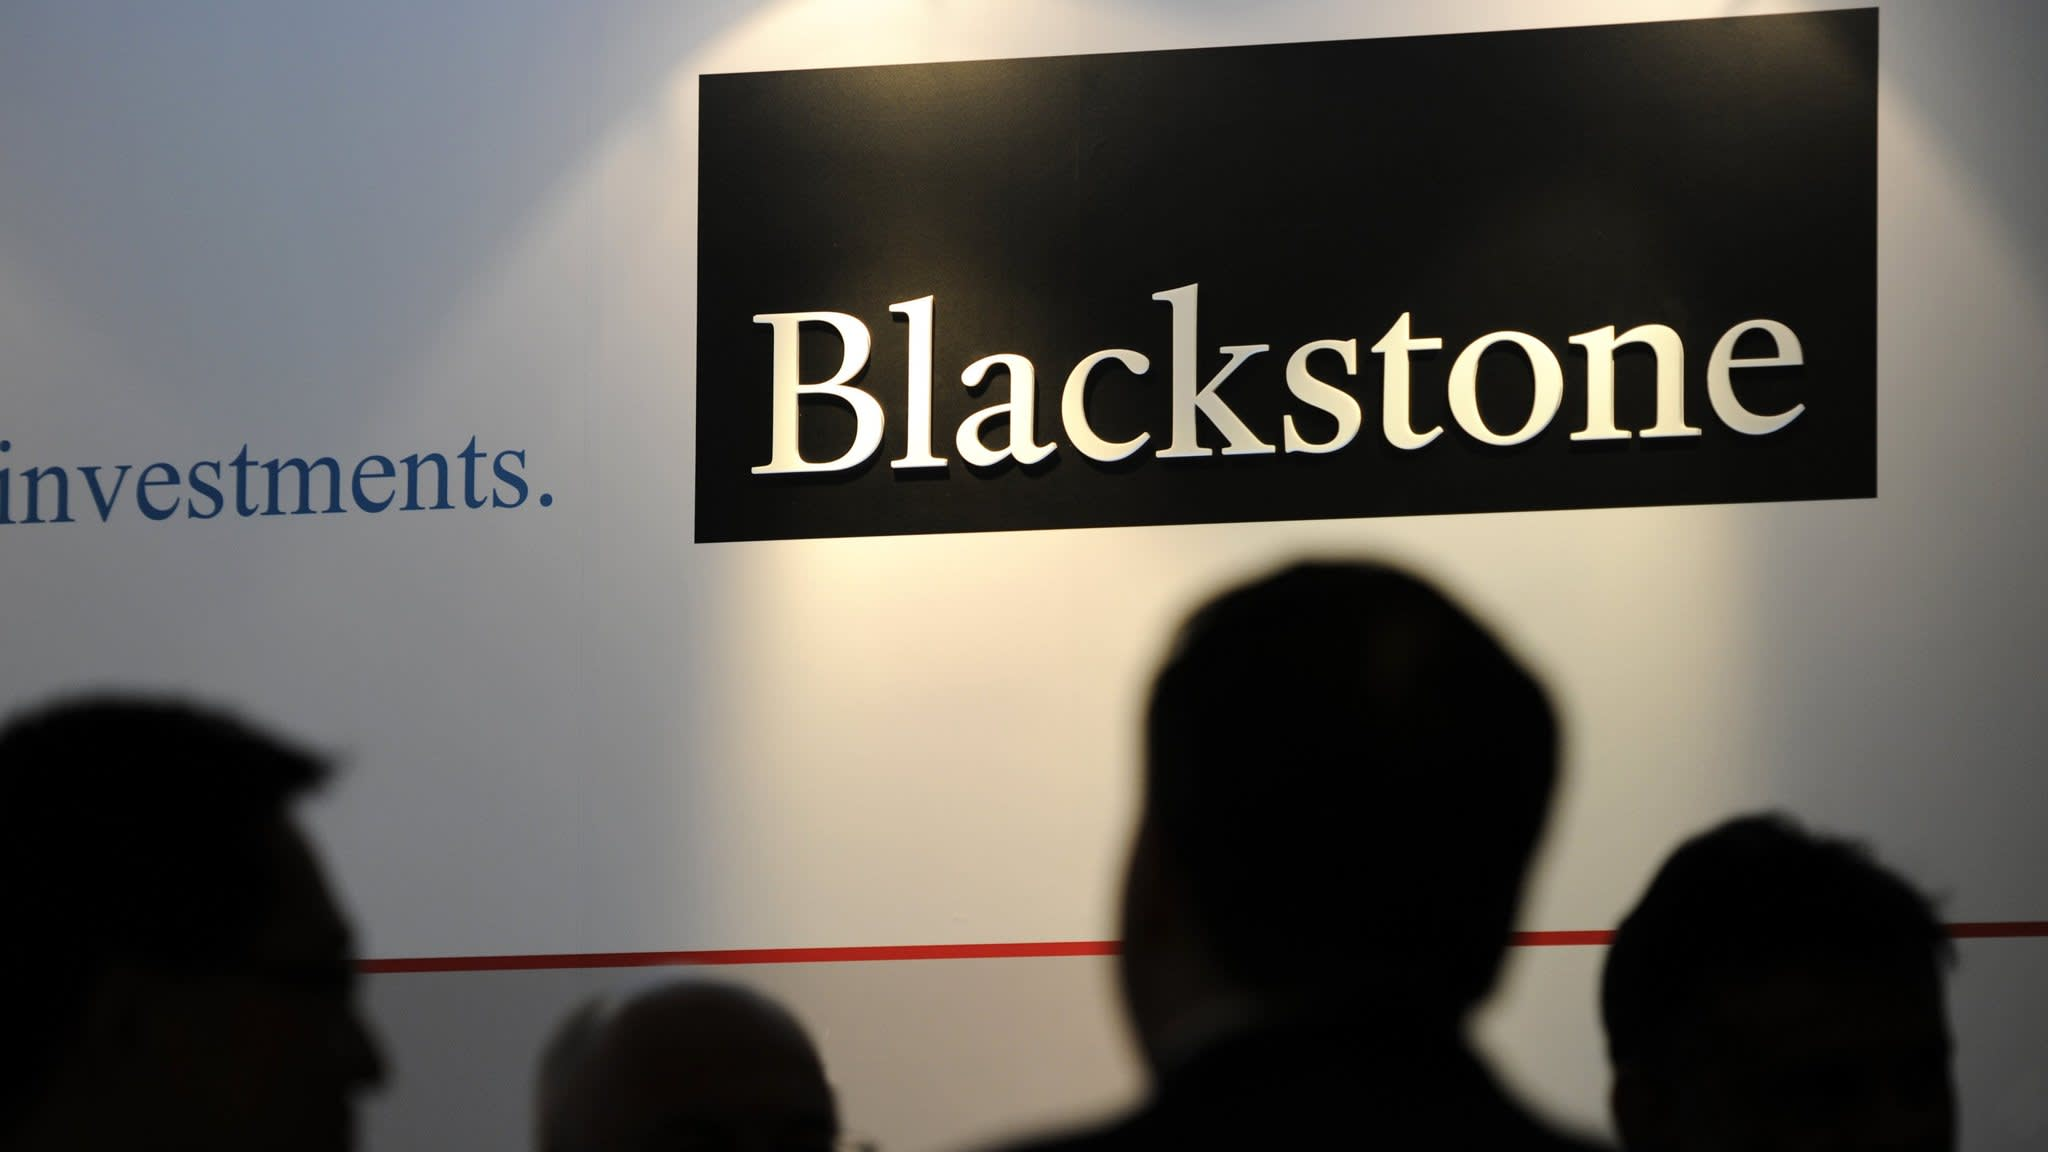 China's sovereign wealth fund sells stake in Blackstone